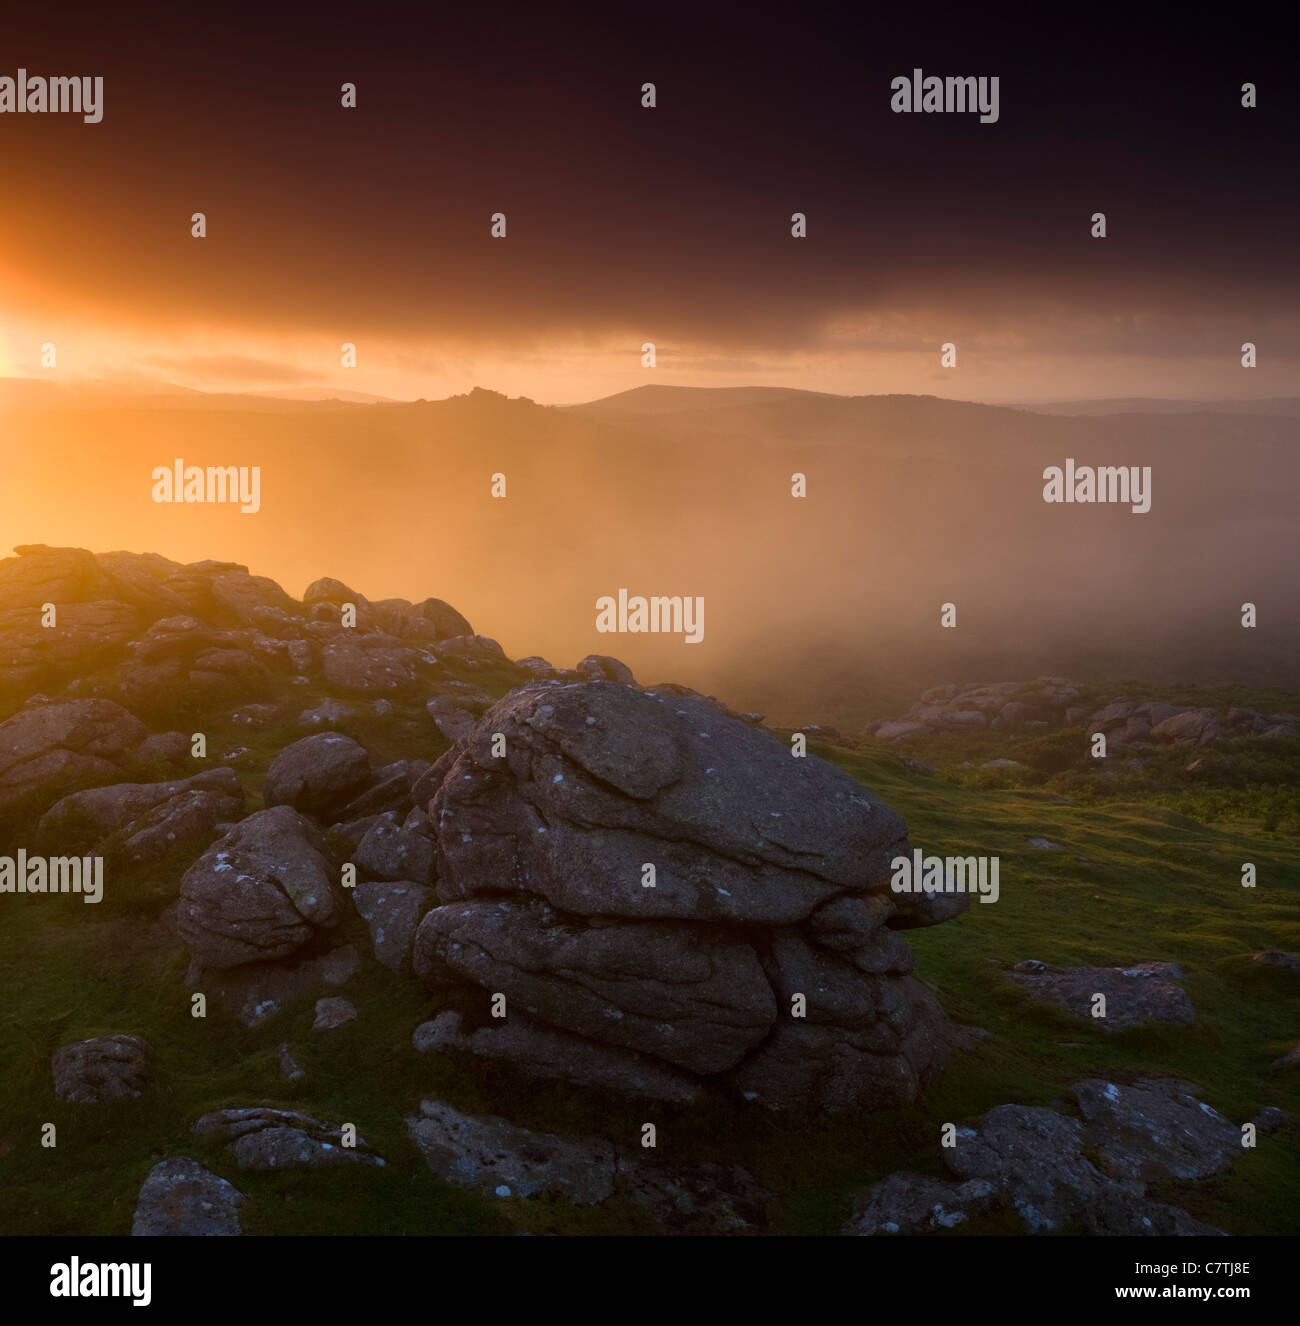 Views to Hound Tor from Holwell Tor on a misty sunset, Dartmoor, Devon, England. Summer (July) 2010. - Stock Image